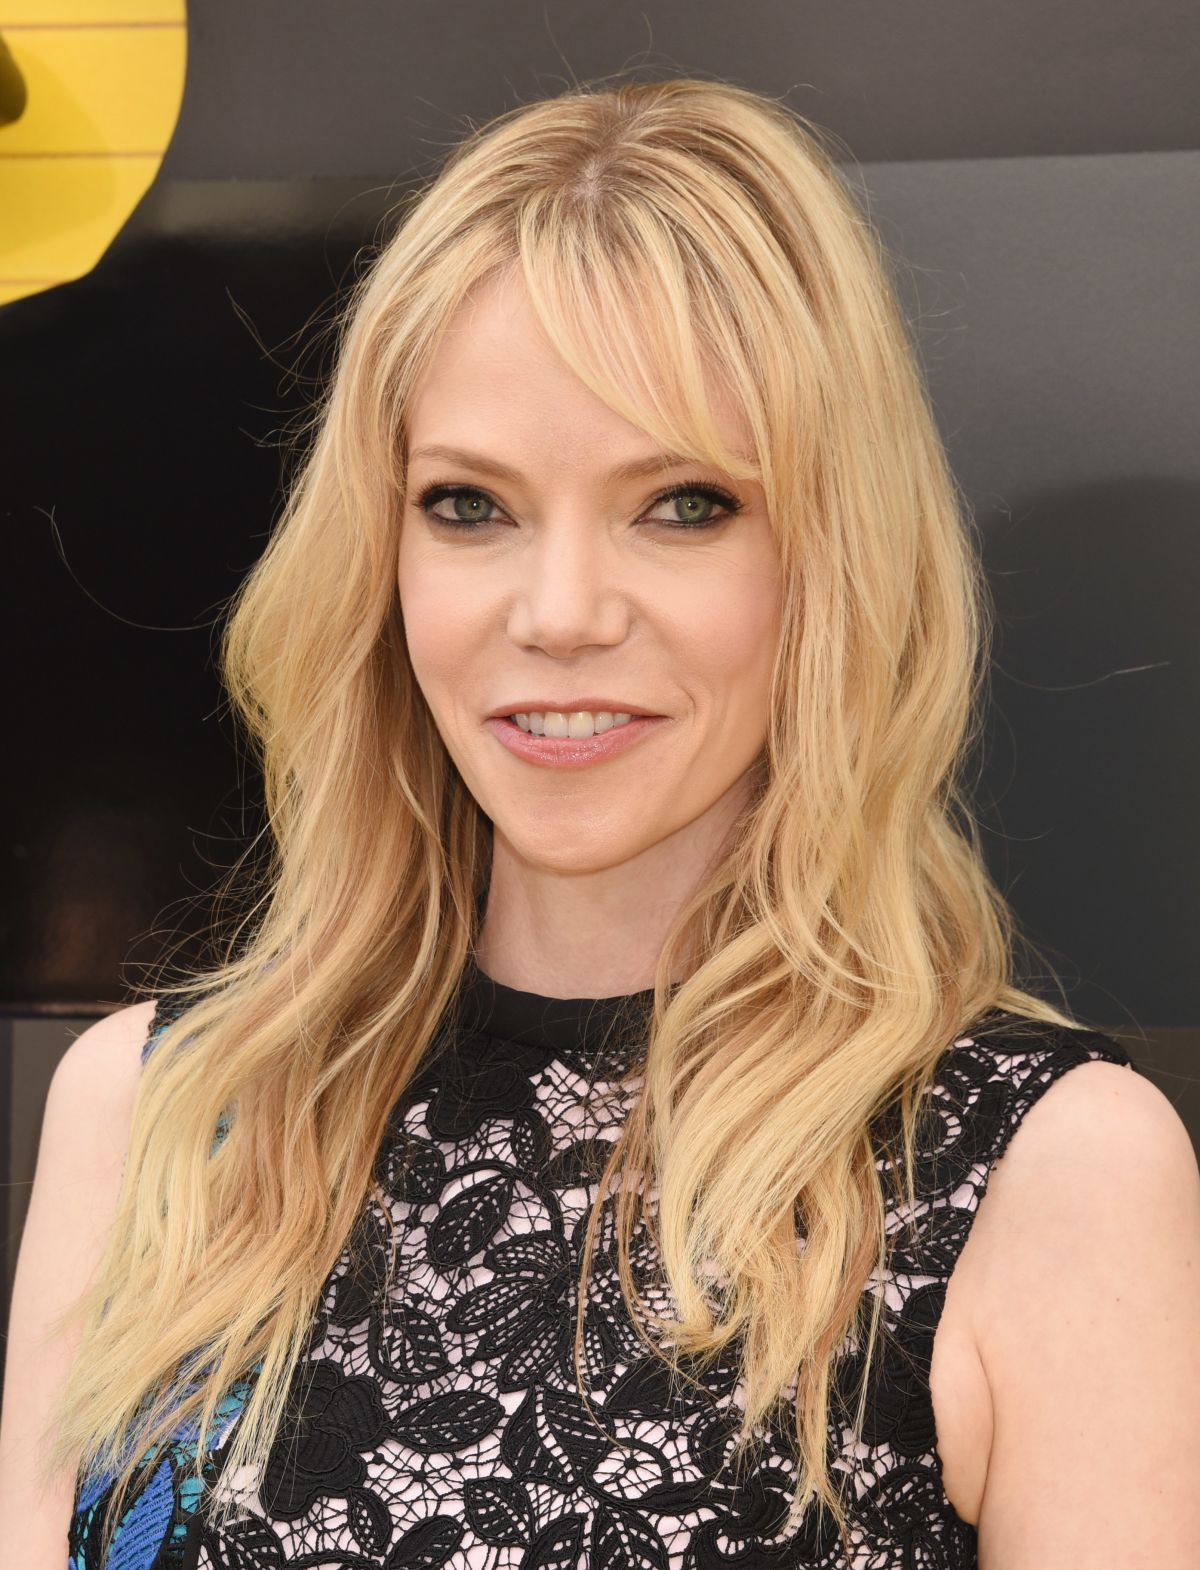 RIKI LINDHOME at The Lego Batman Movie Premiere in Los Angeles 02/04/2017